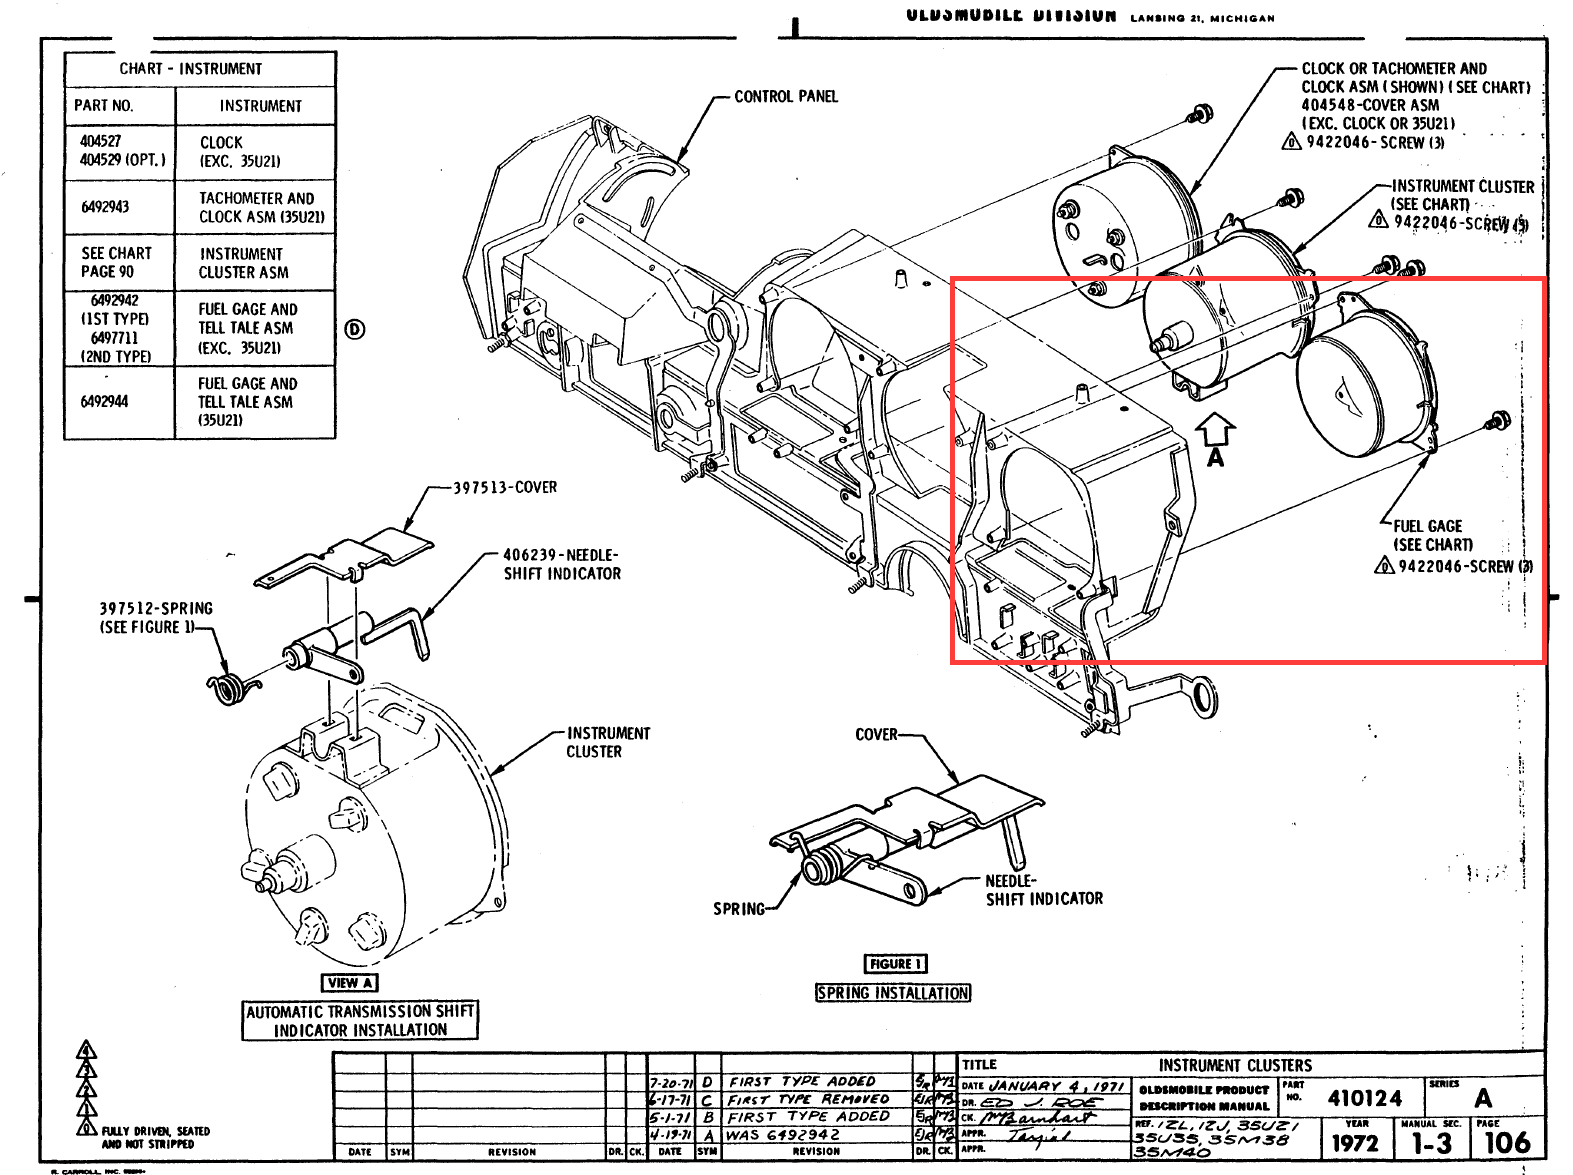 [WRG-2785] 1972 Oldsmobile Cutlass Wiring Diagram